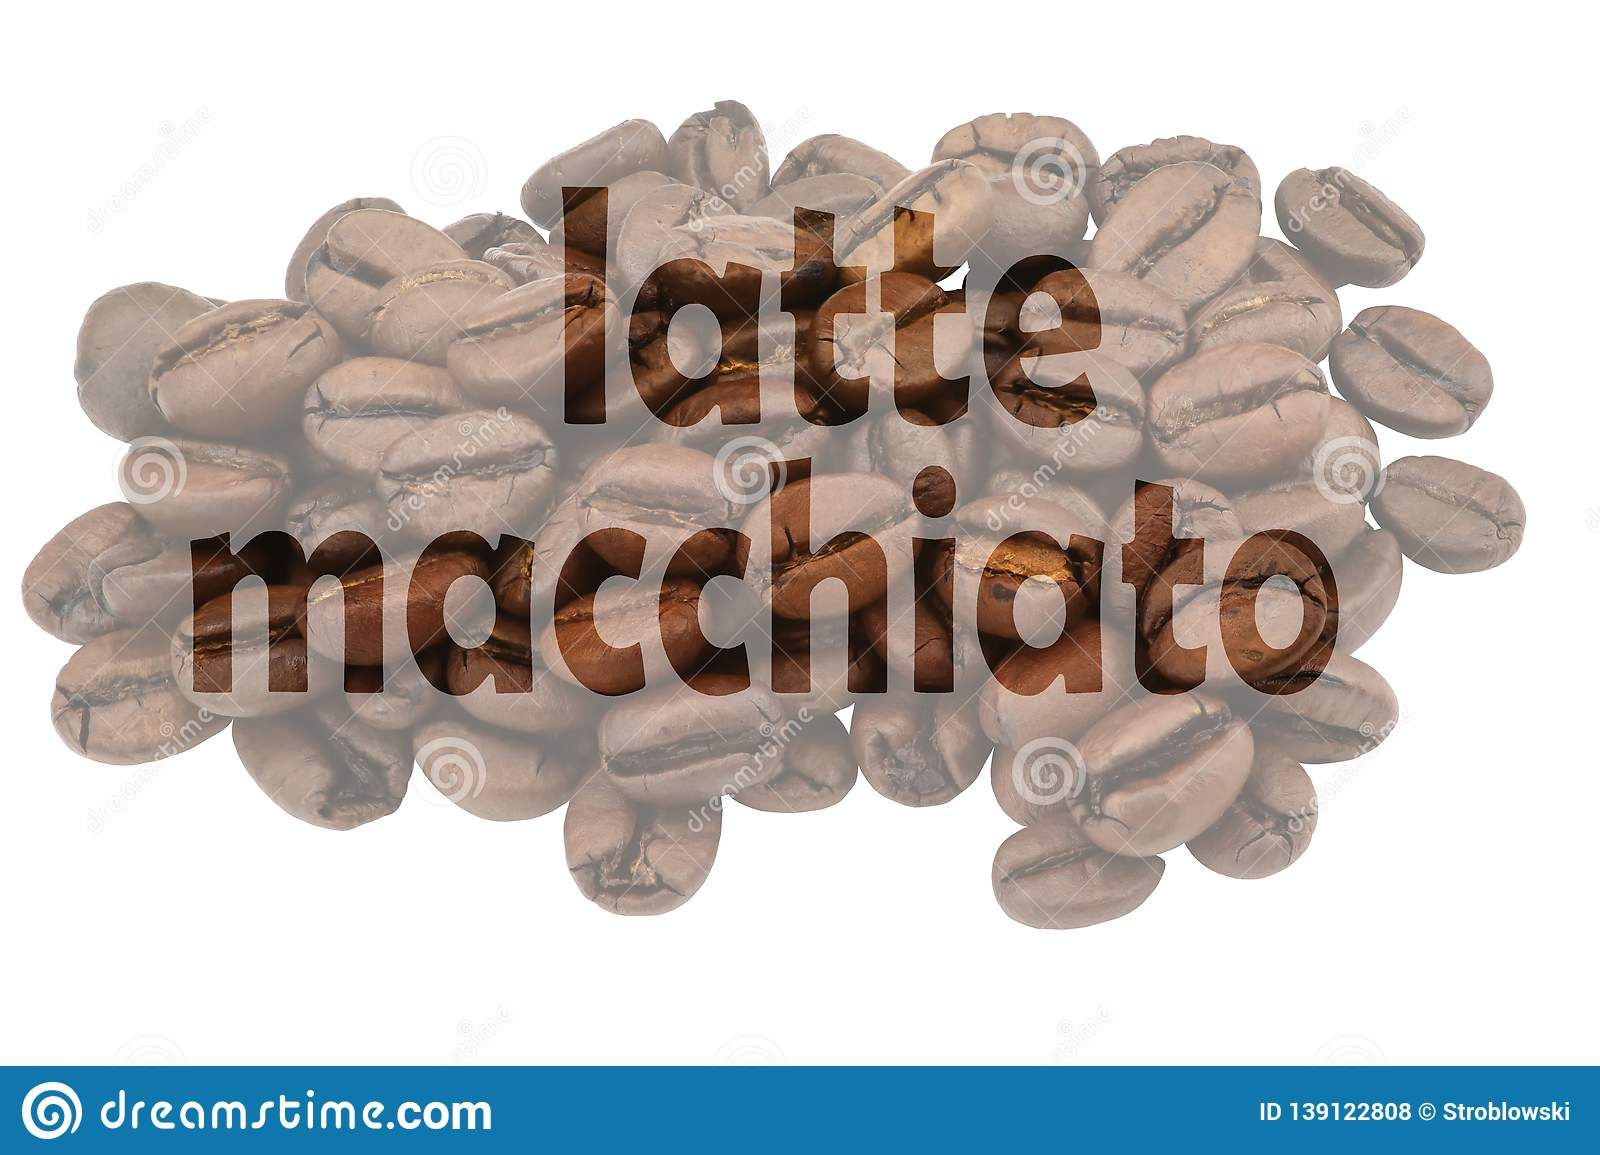 Illustration about Image with highlighted text latte macchiato against pale background of coffee beans. Illustration of milk, foam, cafe - 139122808 #lattemacchiato